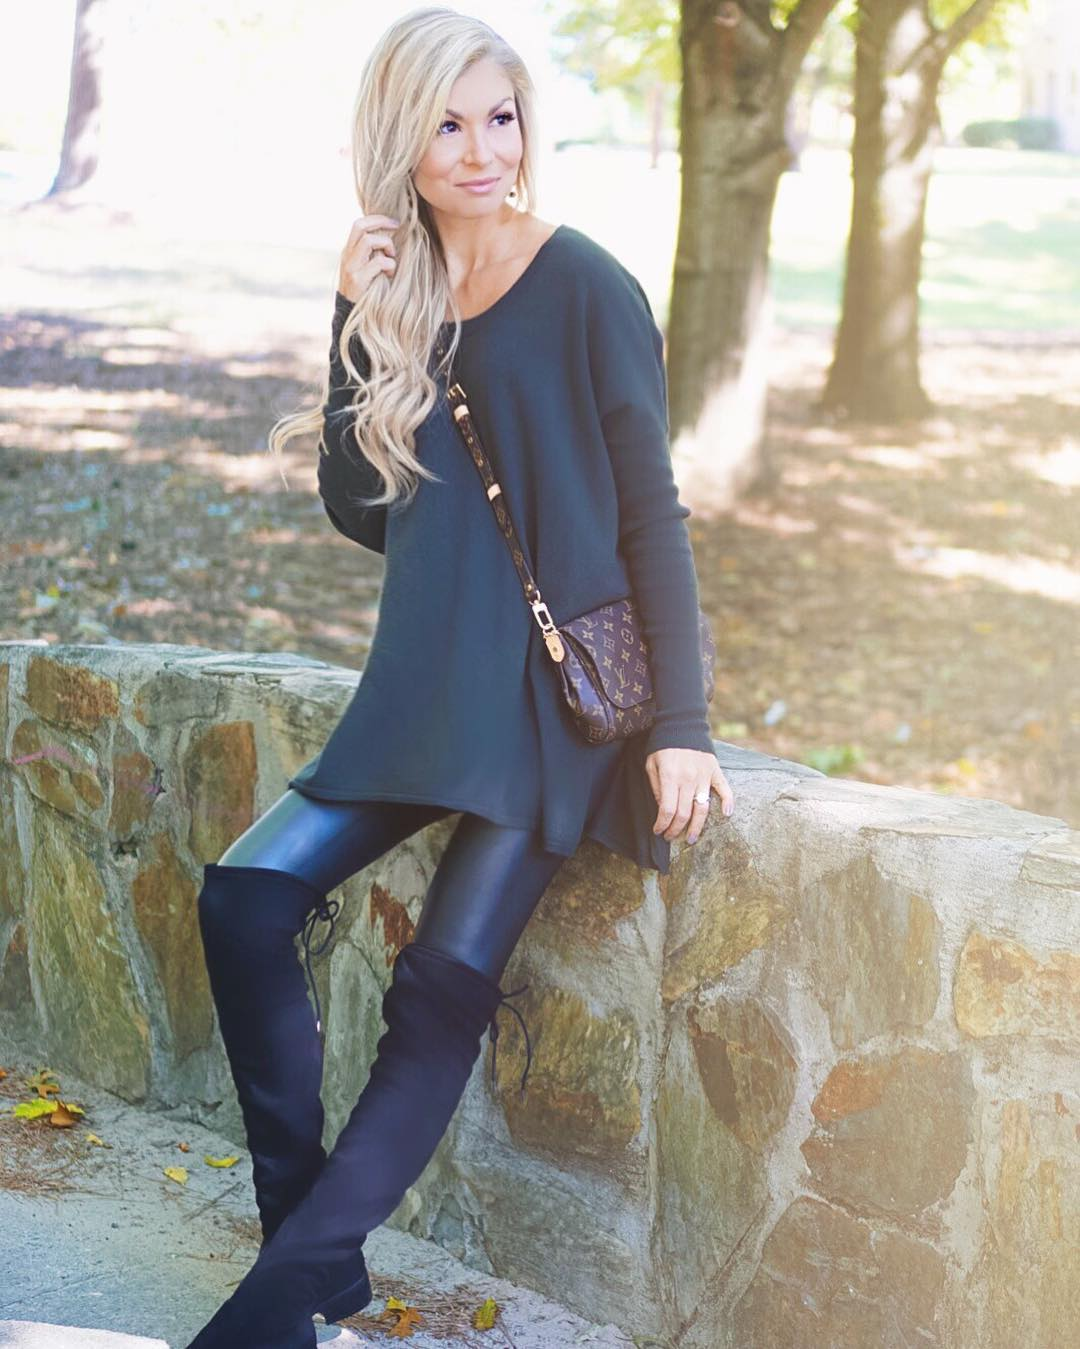 Finally starting to feel like FALL and I couldn't be happier!! {Oversized sweaters and OTK boots give me life!} http://liketk.it/2pmsz #fallfashion #fall #wiw #ootd #sweaterweather